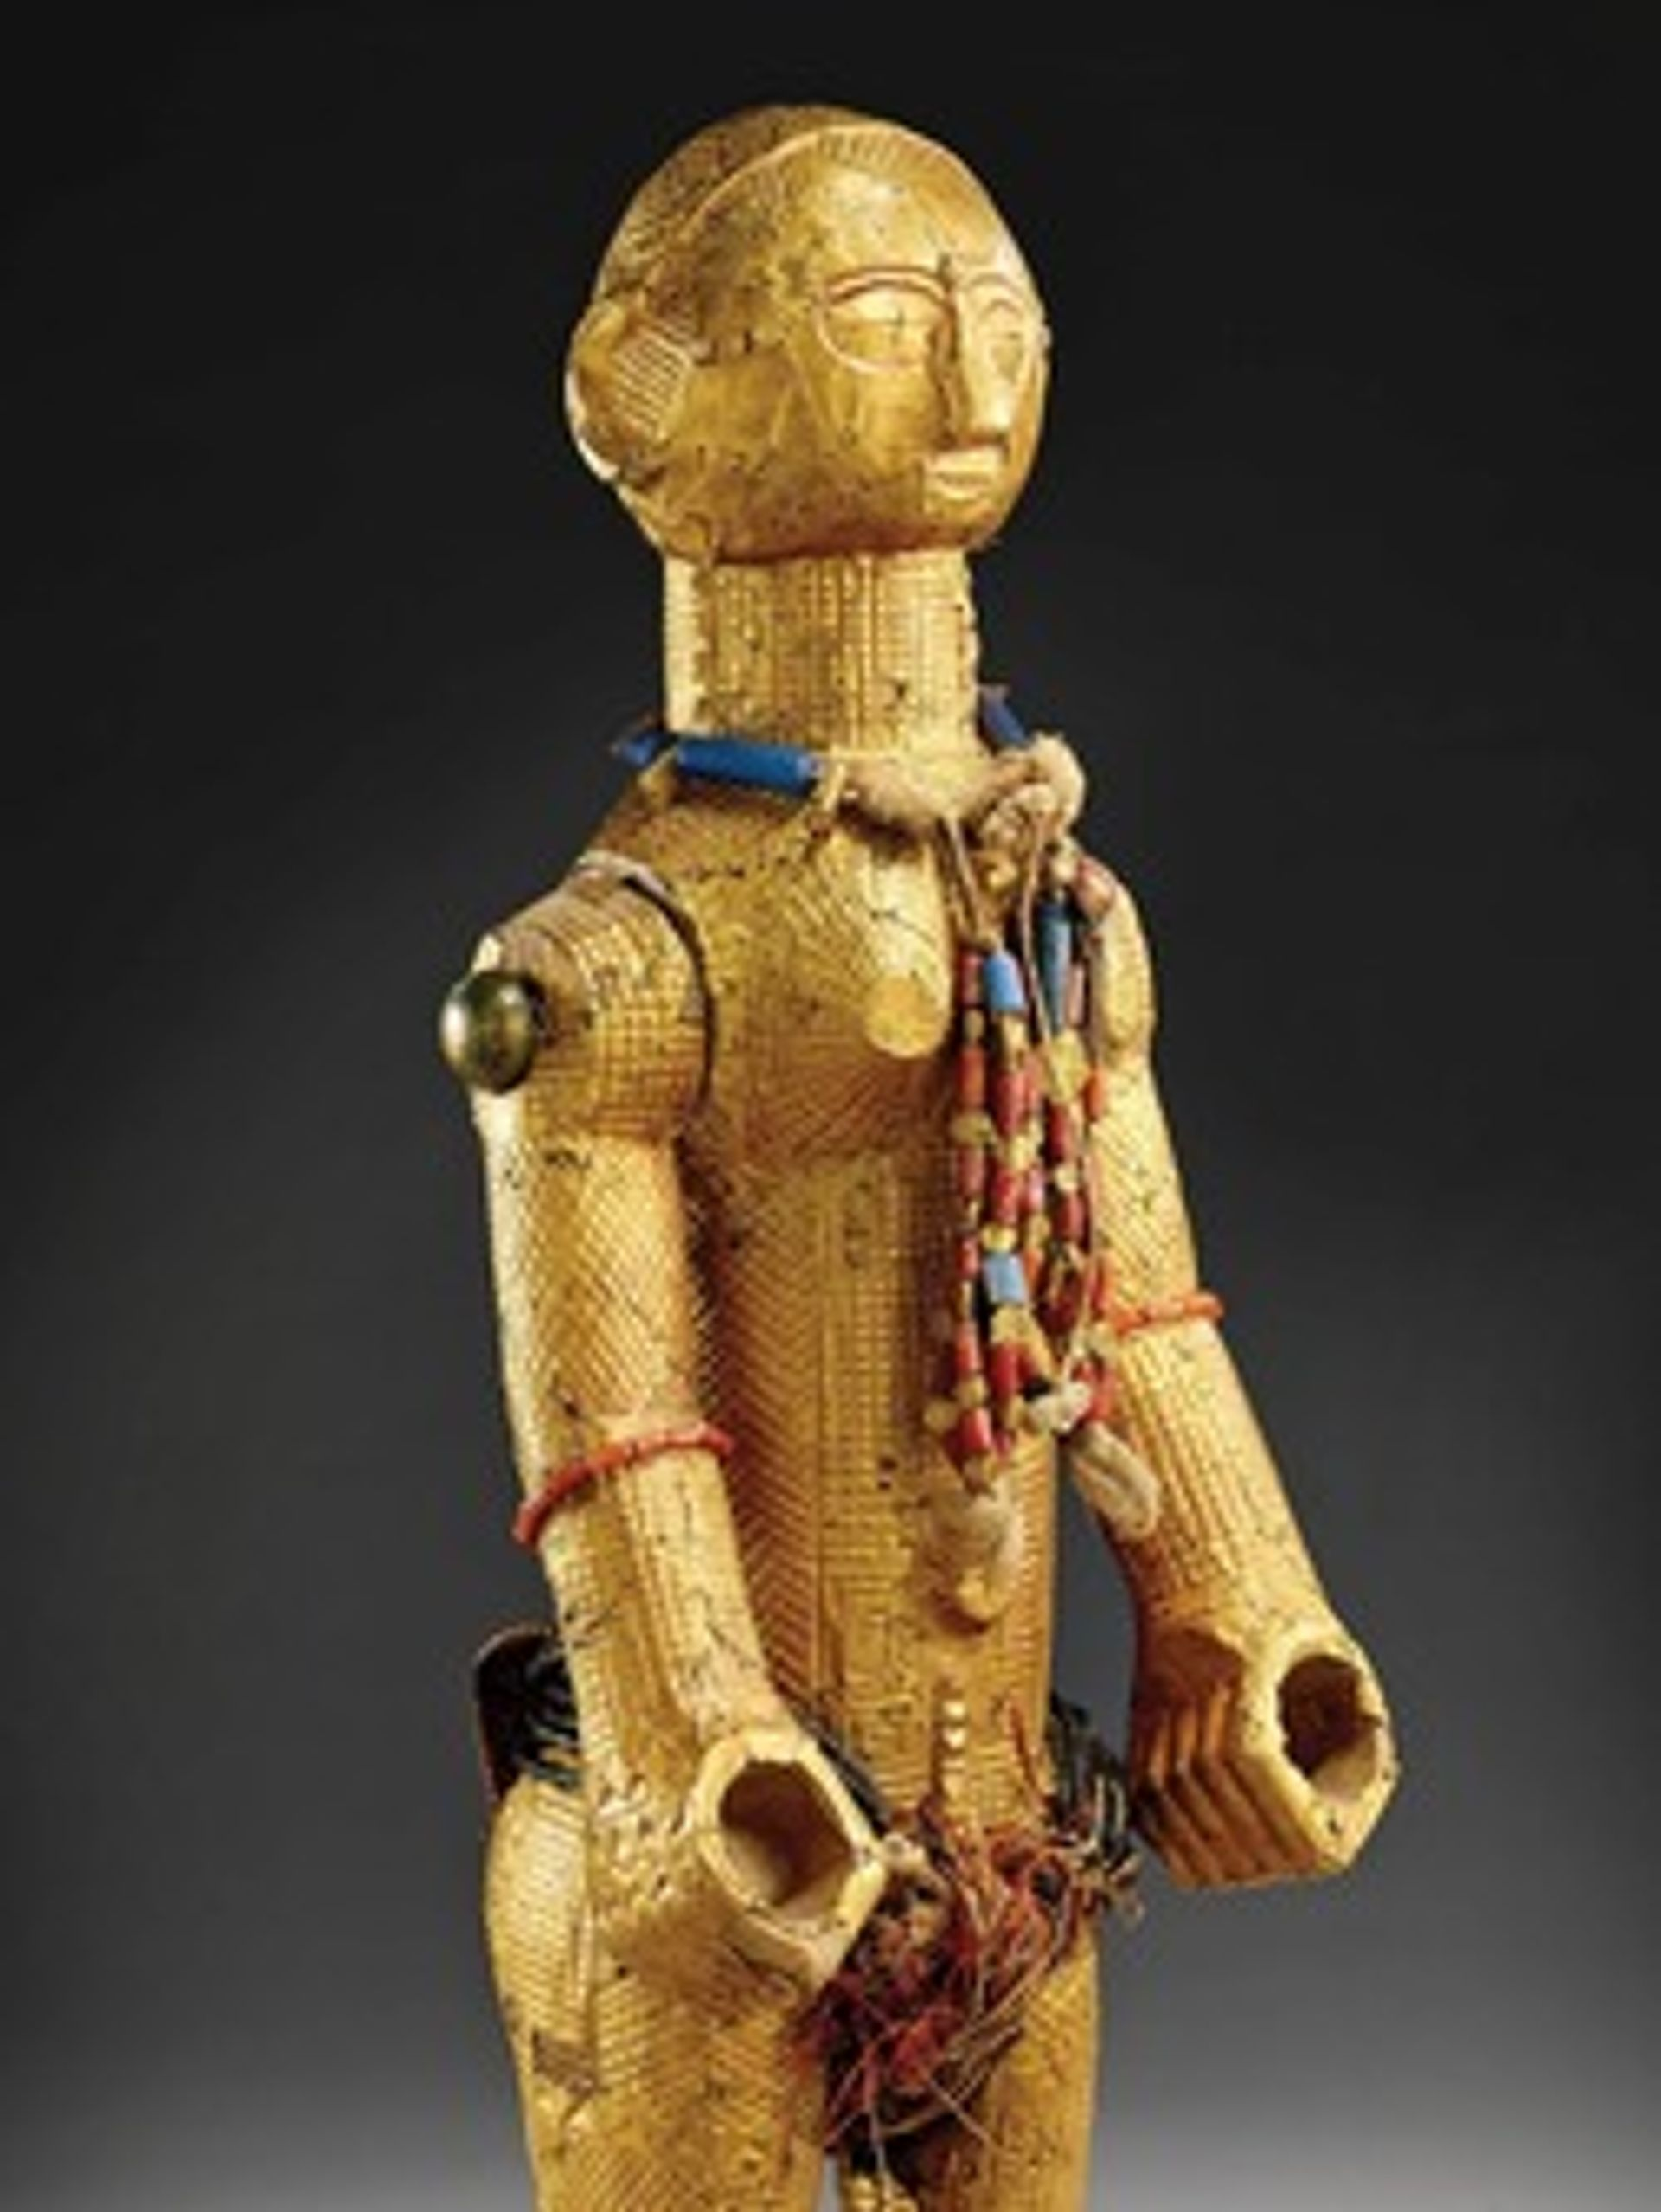 This 19th-century female figure from the current-day Ivory Coast is made of wood, gold, brass, coral, glass, coconut, vegetable fibres and cotton (© Musée du quai Branly - Jacques Chirac, photo Claude Germain)